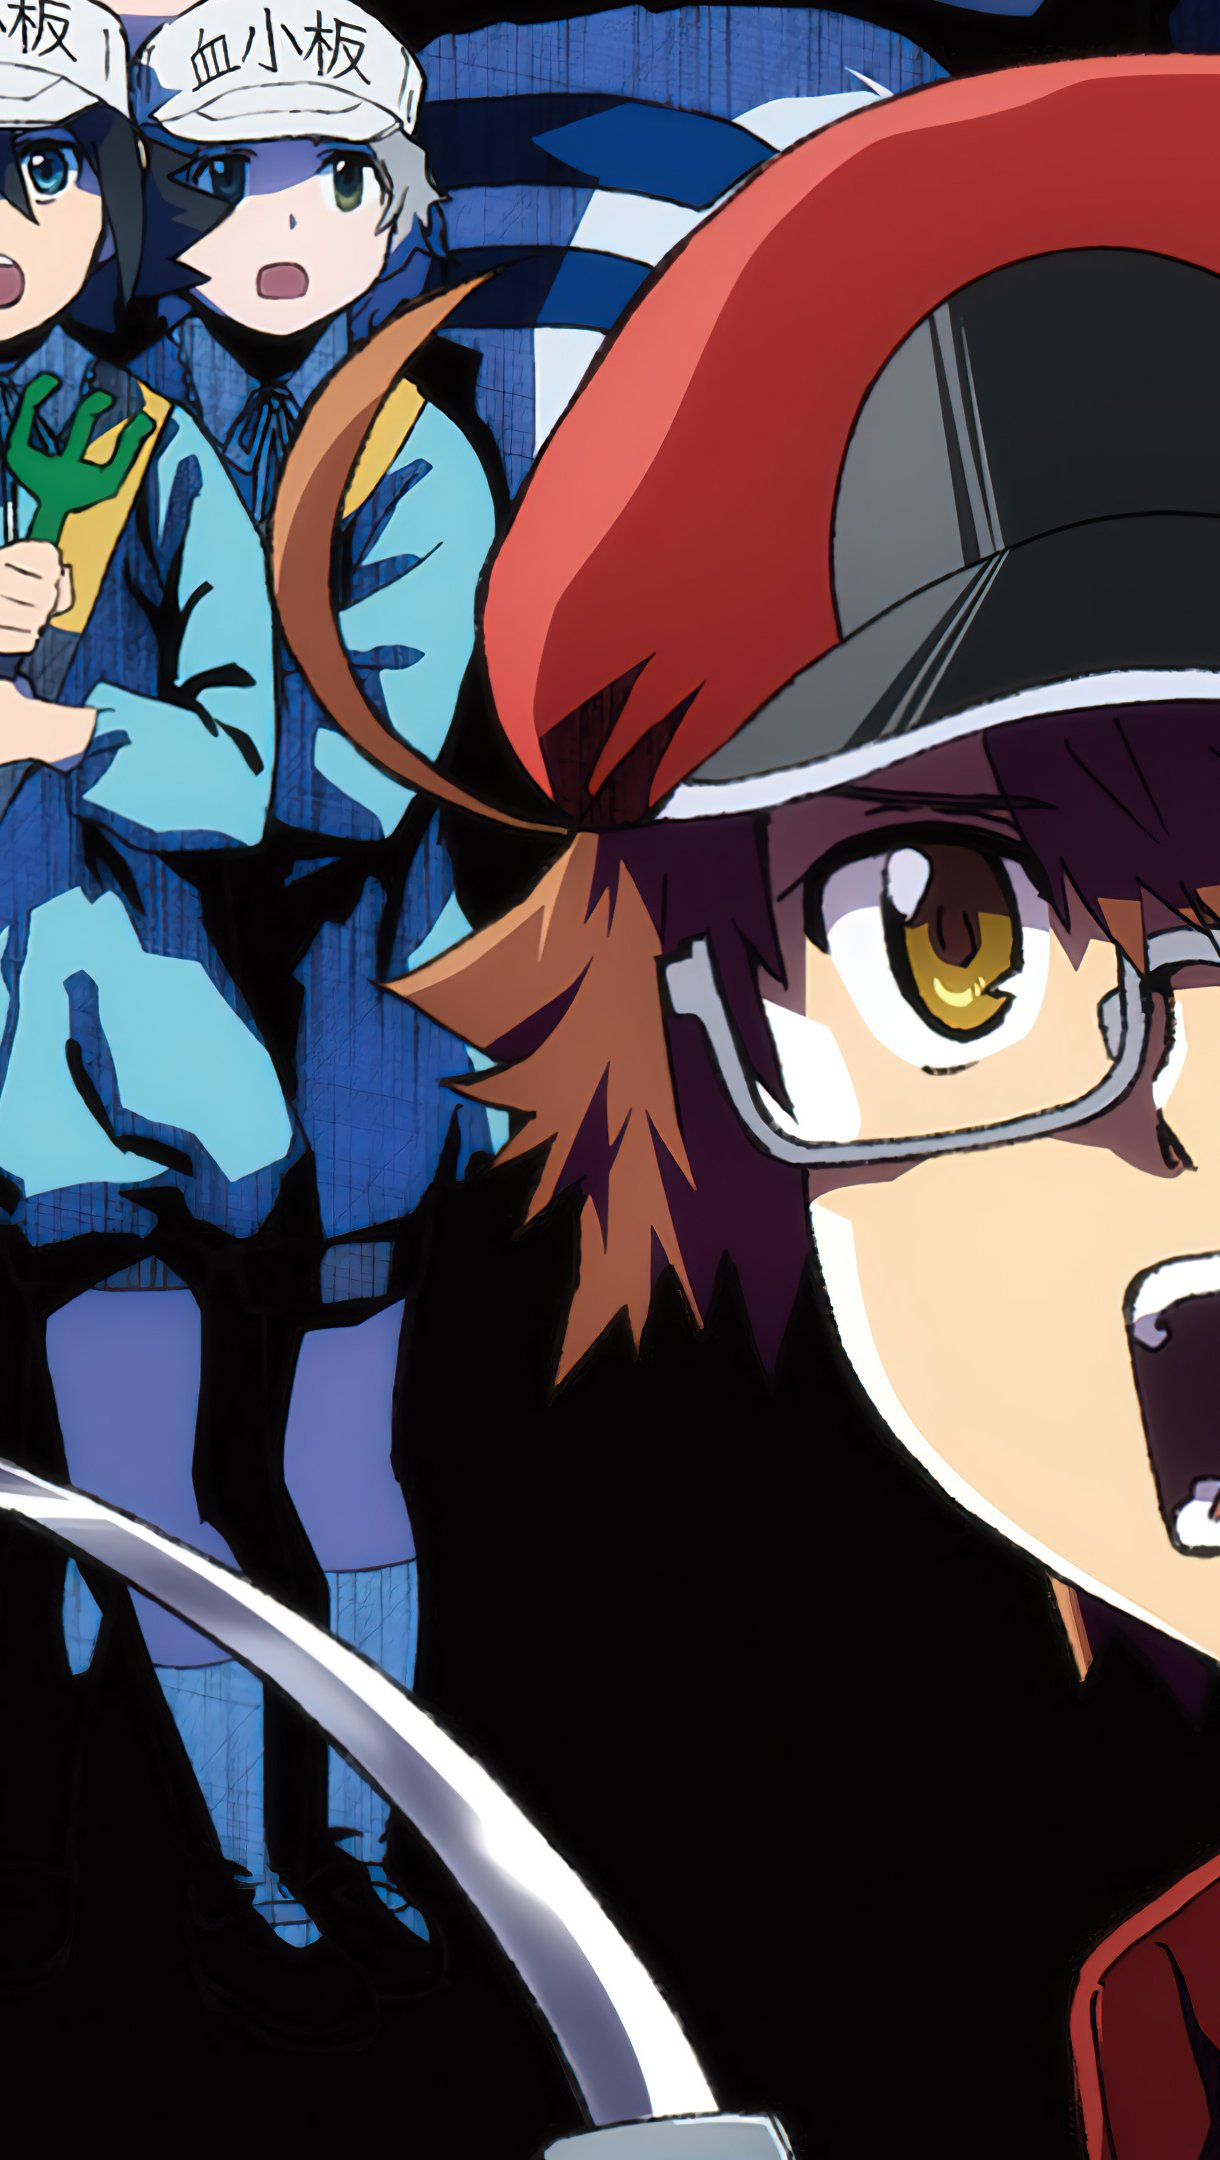 Anime Wallpaper Characters from Cells at work: Code Black Vertical